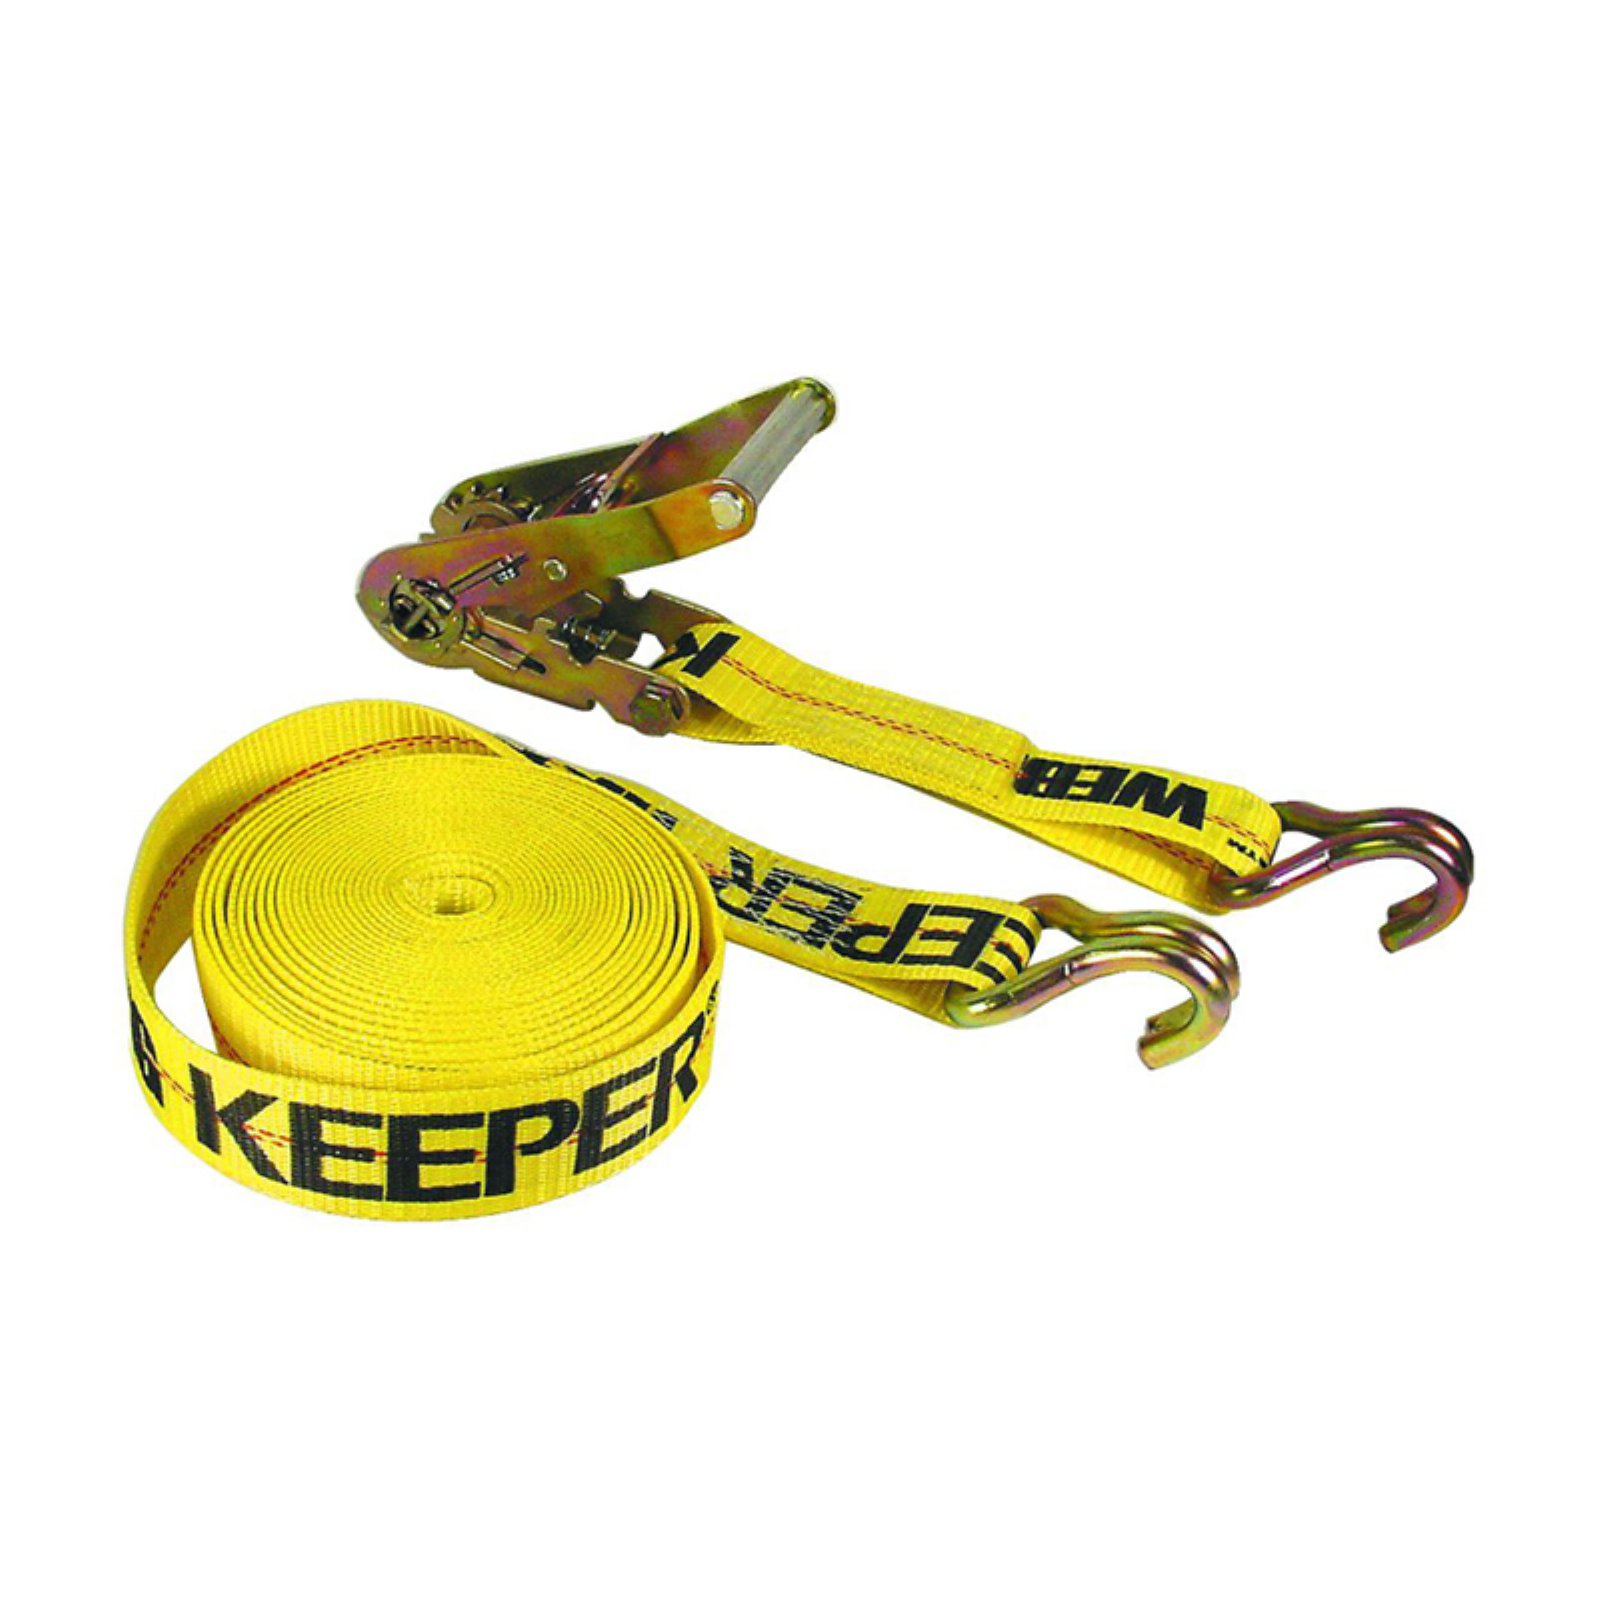 Keeper Corporation Double-J Ratchet Tie Down